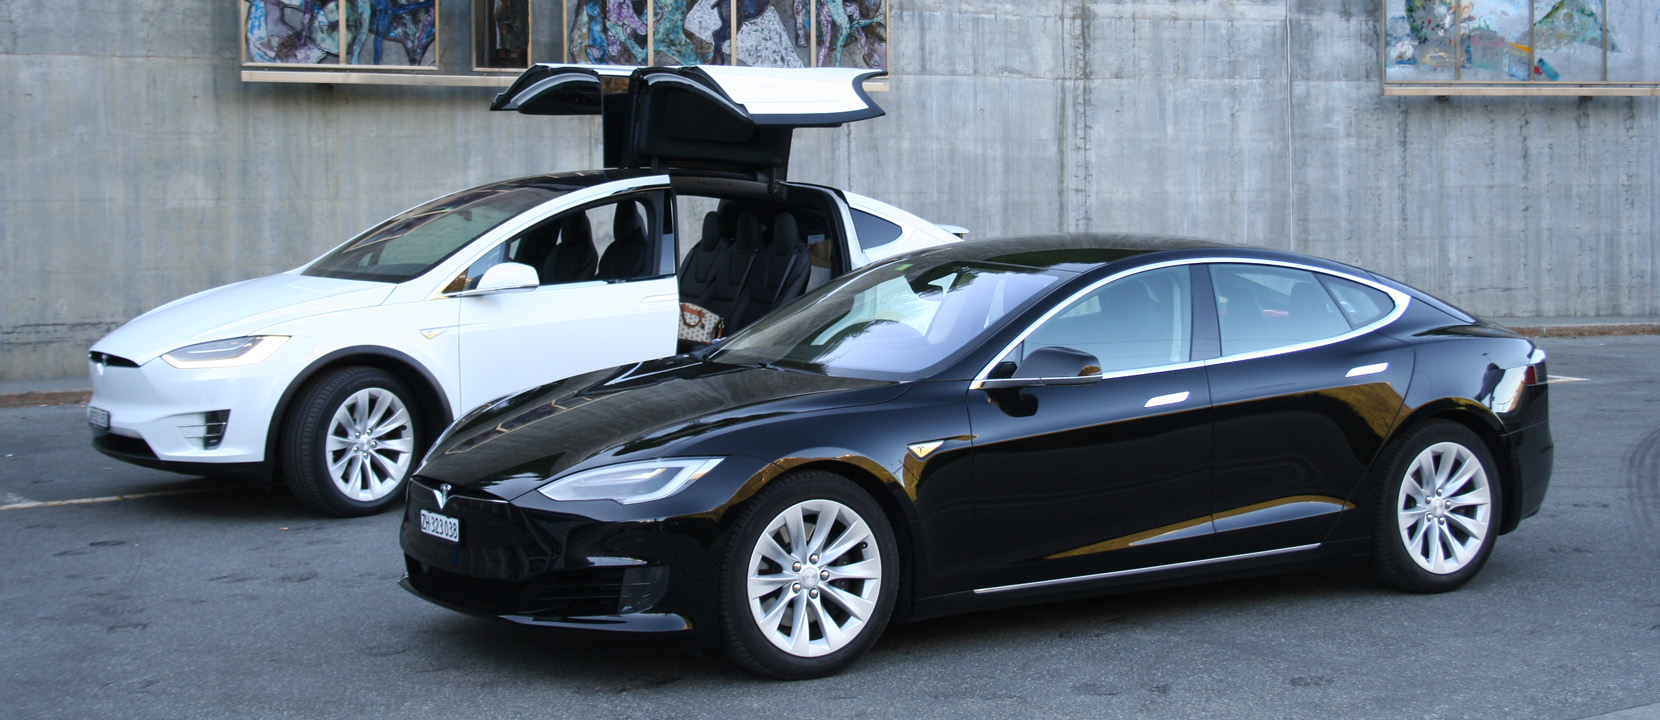 9 Day Exclusive TESLA RALLY SWISS PLATEAU through the scenic Swiss Valies and country roads